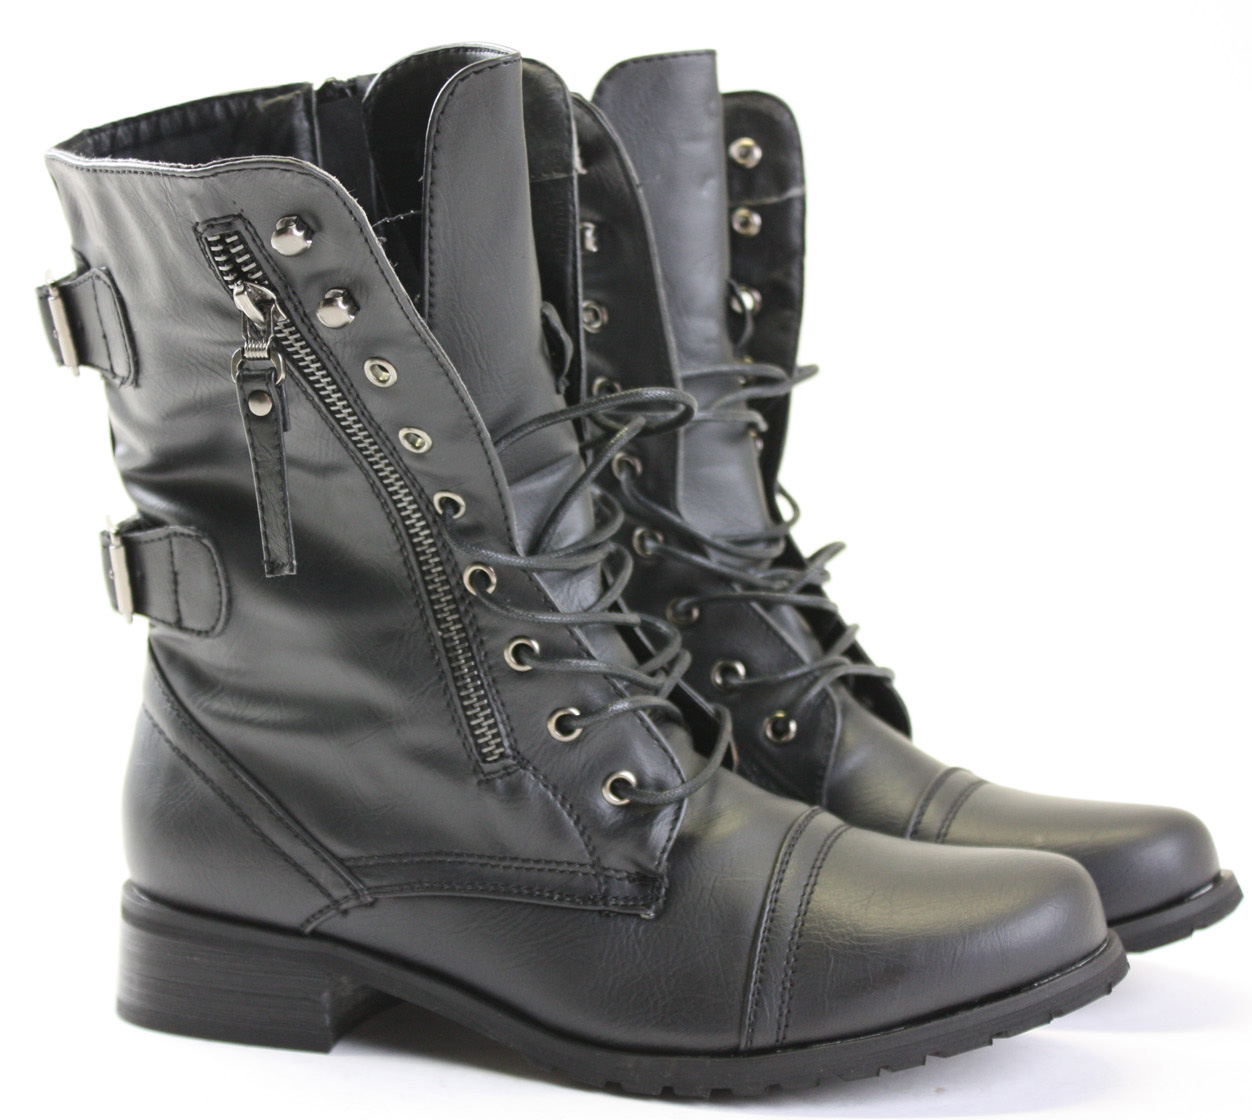 Womens Combat Style Army Worker Military Ankle Boots Flat Punk Goth Shoes Size | eBay